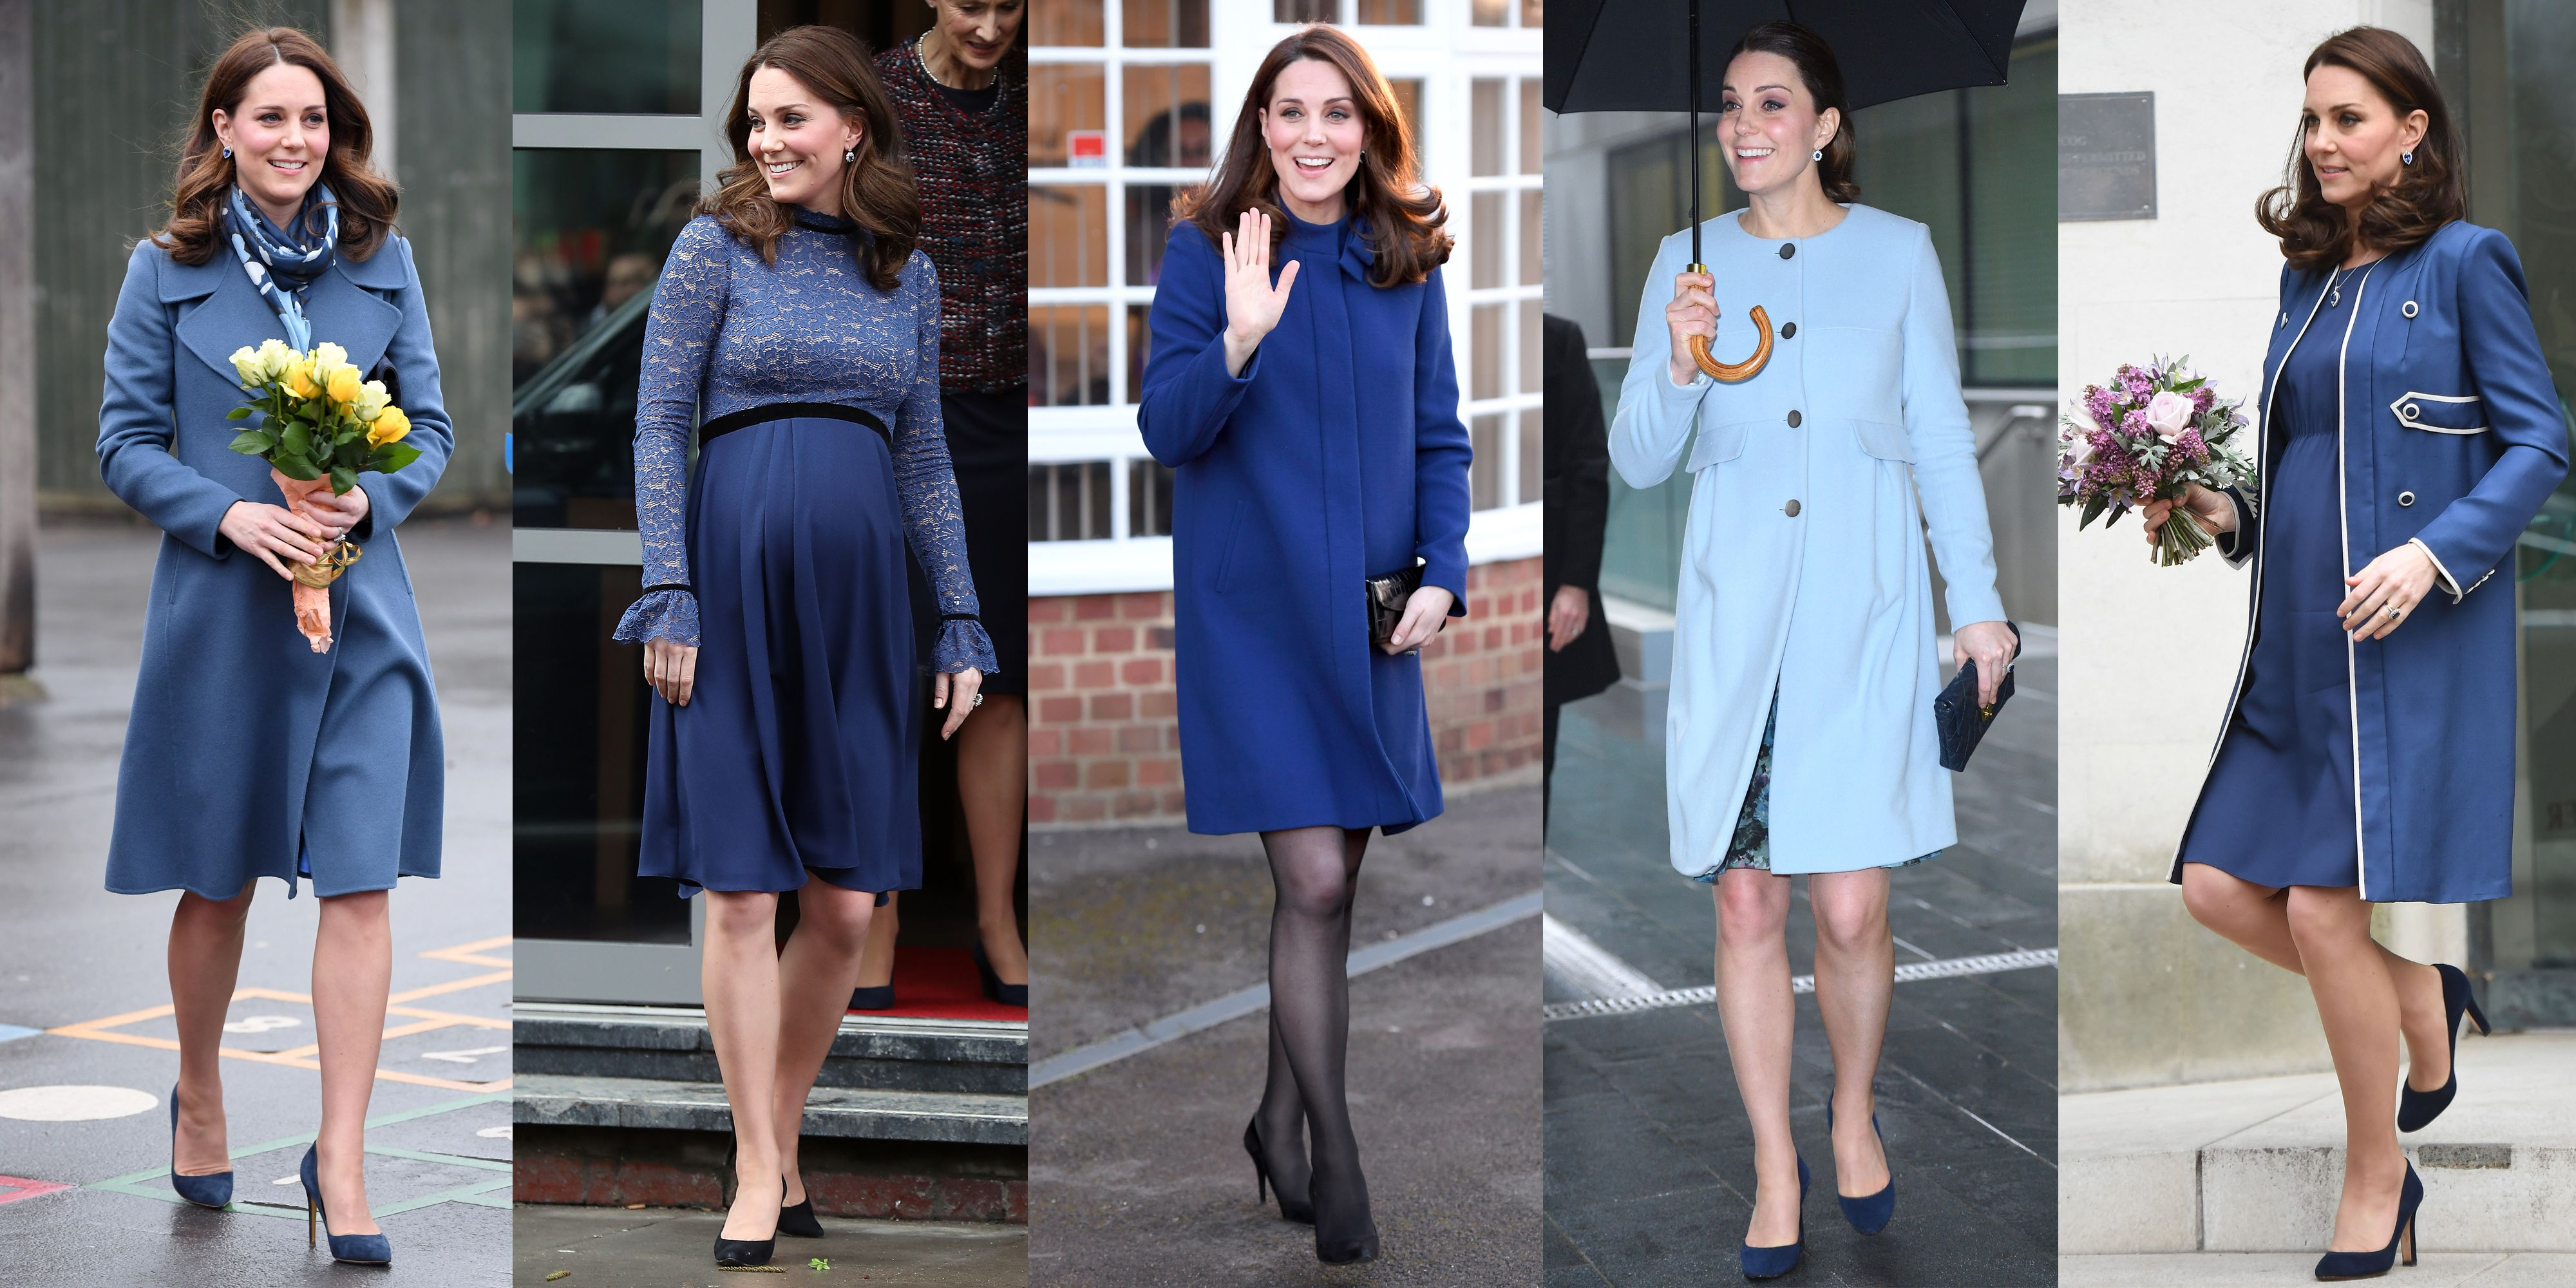 fc799f8aed9d5 Are Kate Middleton s Style Choices Hinting at the Gender of the Next Royal  Baby